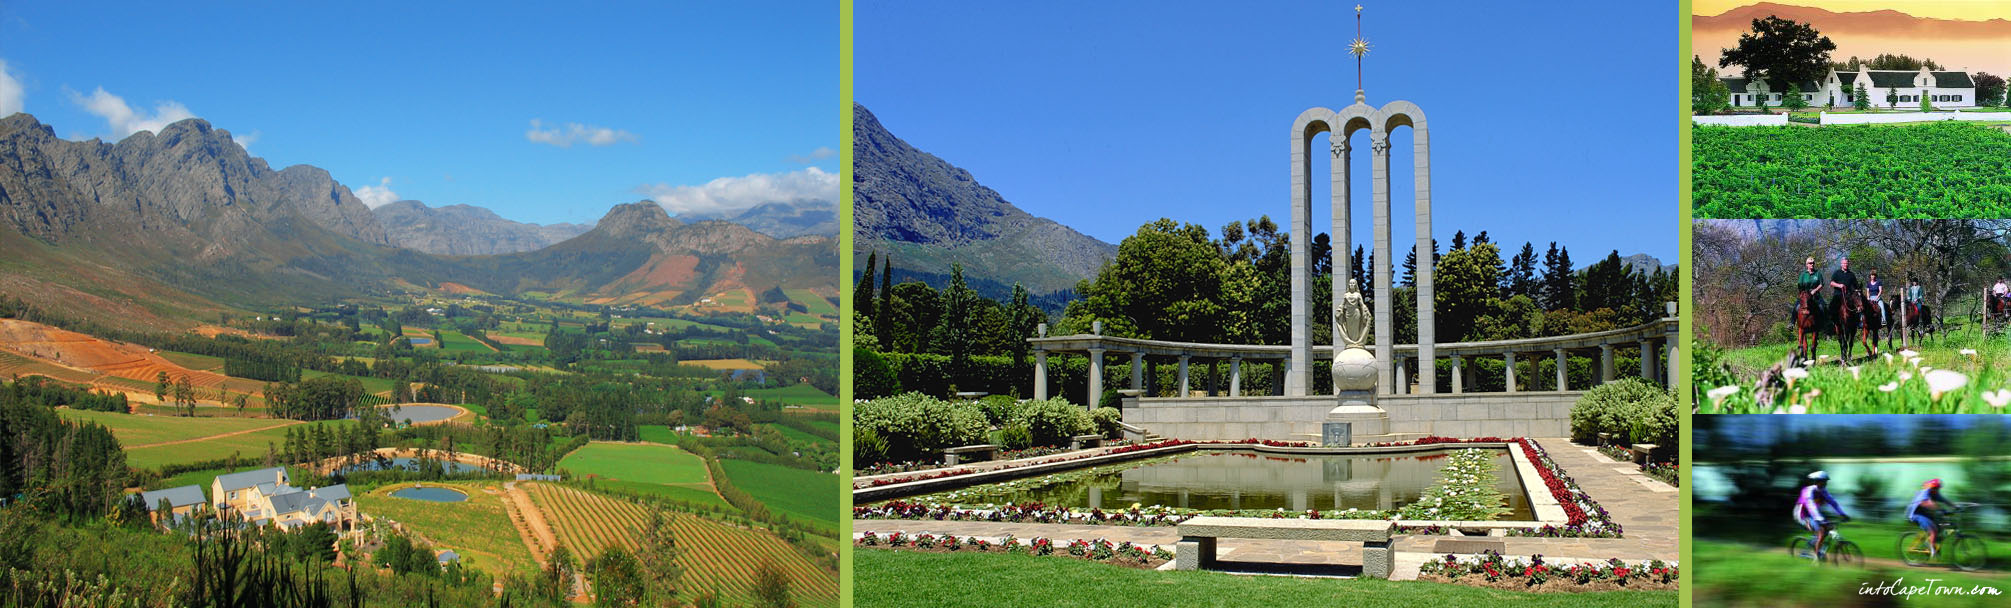 Huguenot Monument in Franschhoek on IntoCapeTown.com